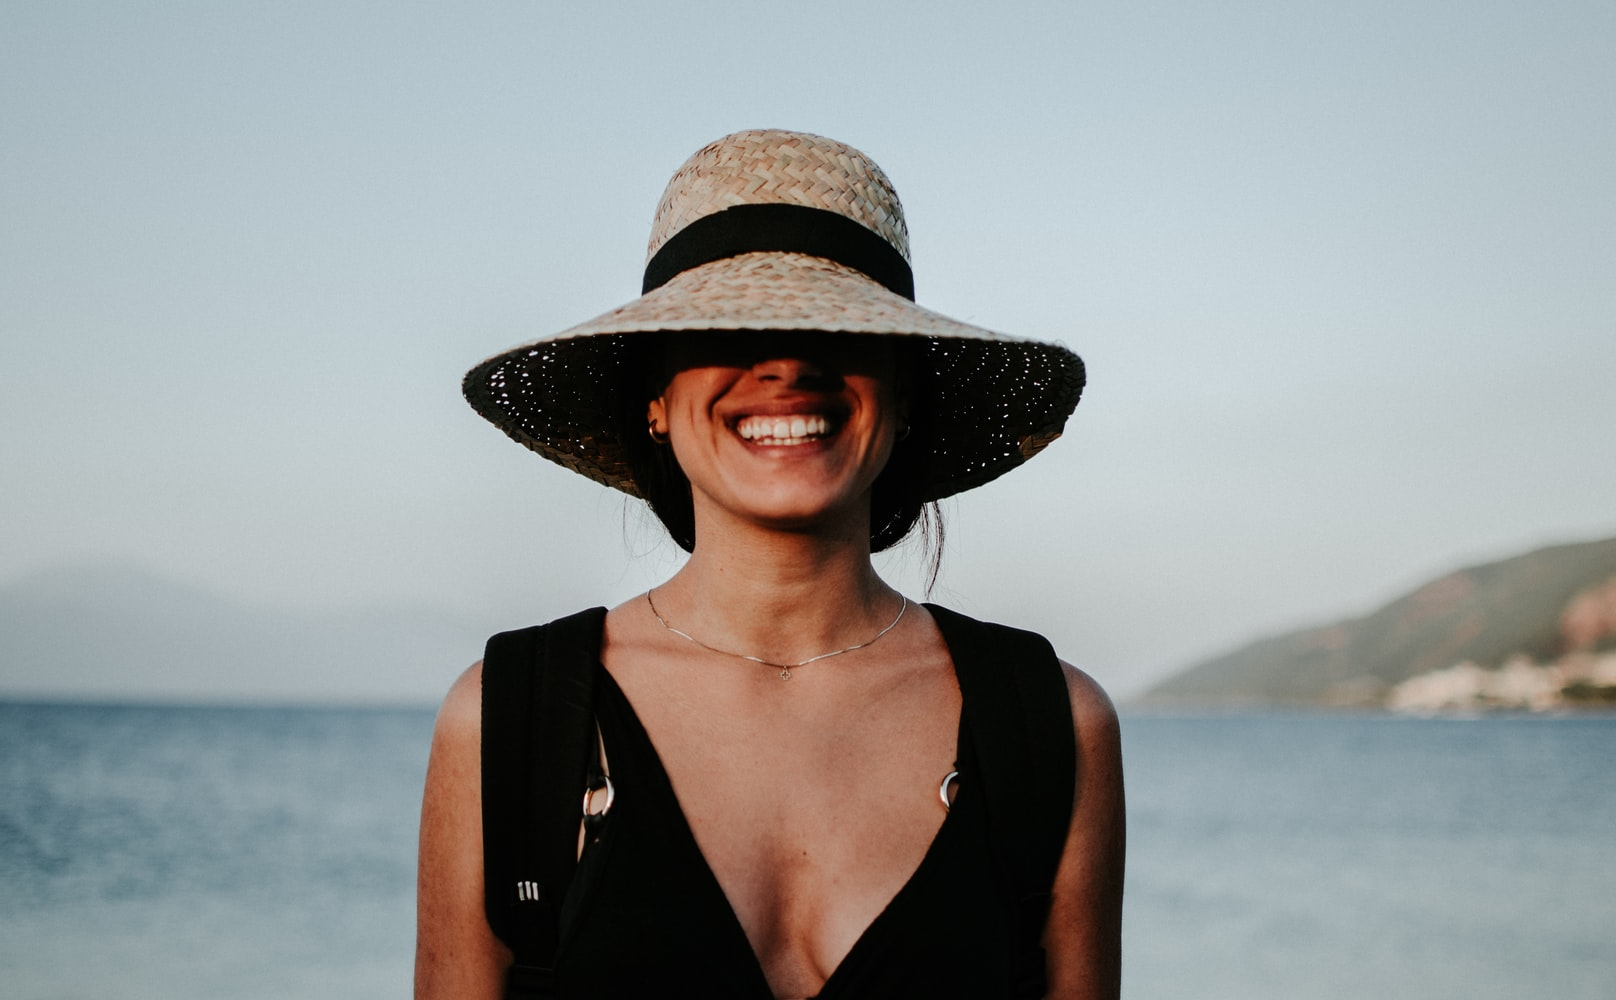 A smiling lady with a hat